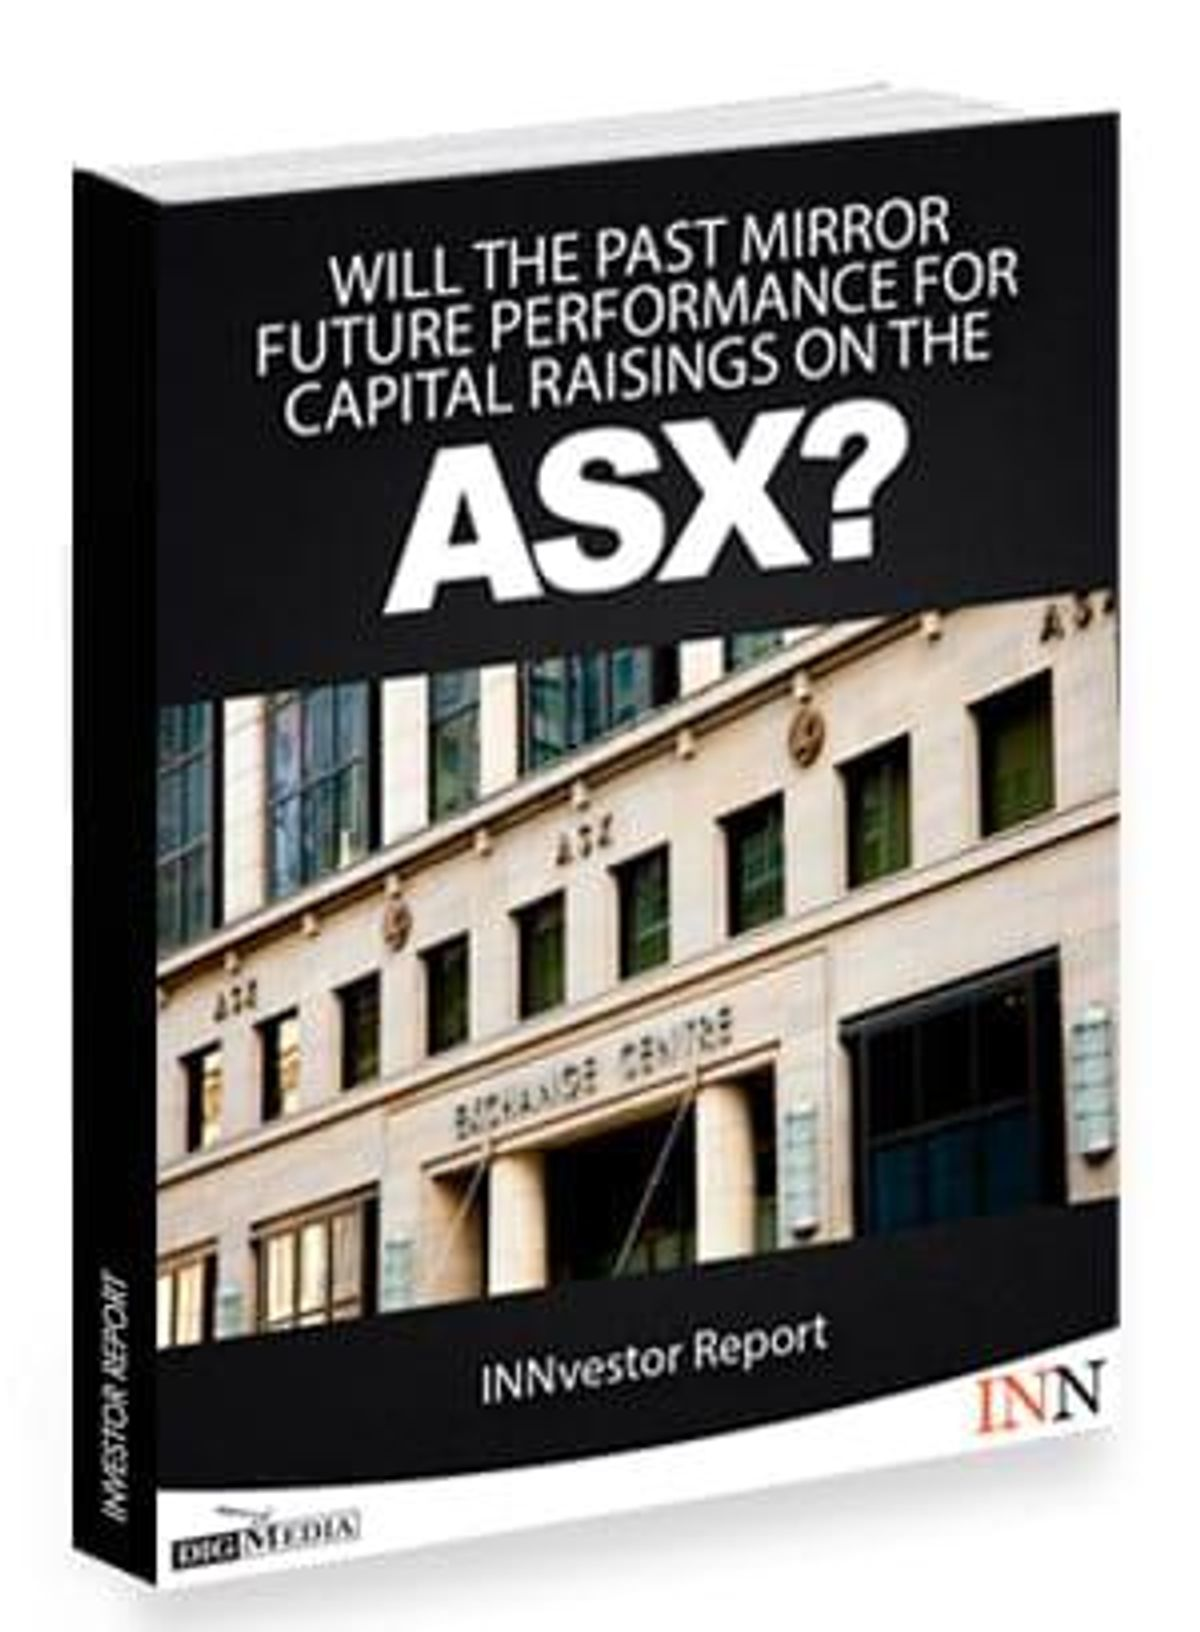 Will The Past Mirror Future Performance For Capital Raisings On The ASX?